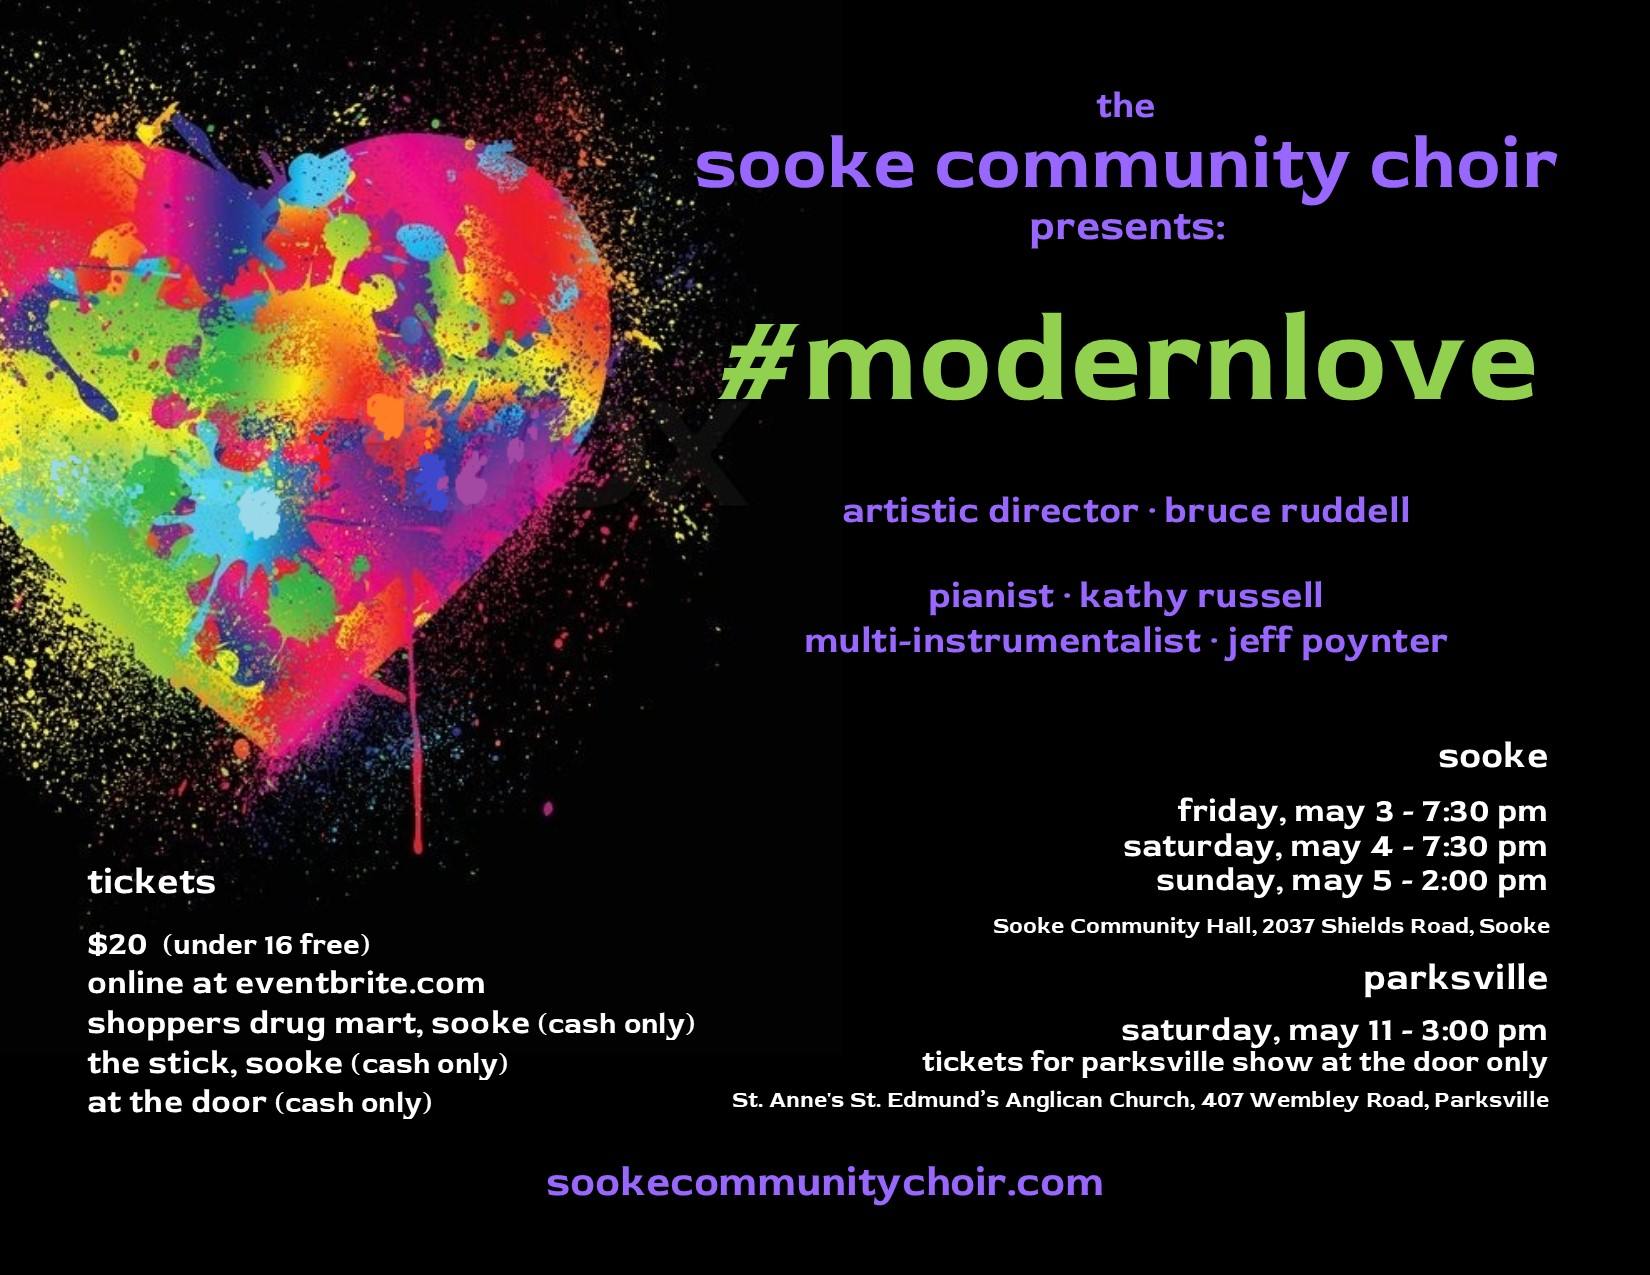 #modernlove with The Sooke Community Choir